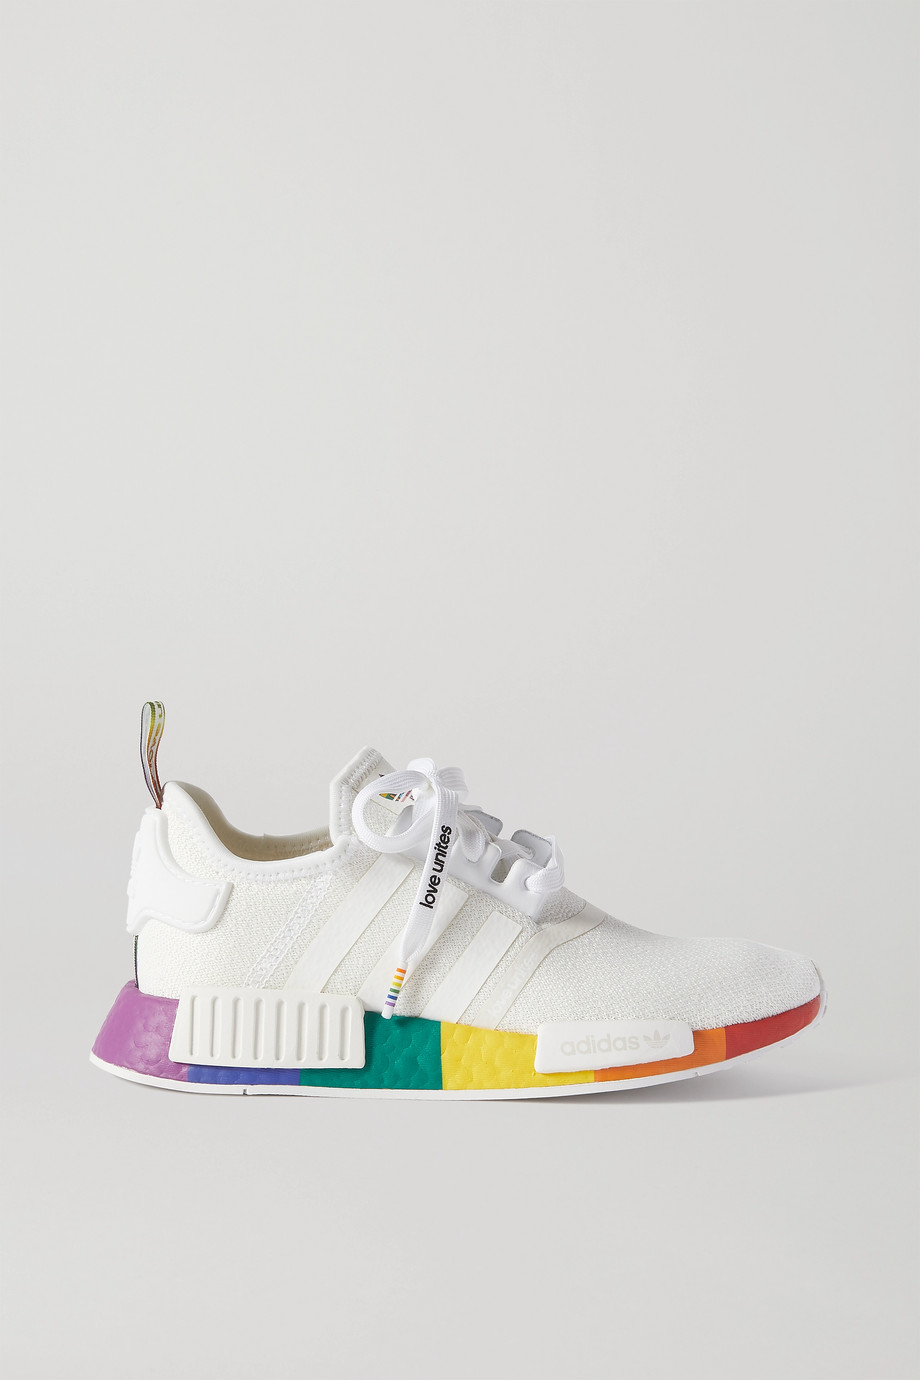 adidas Originals NMD_R1 Pride rubber-trimmed Primeknit sneakers